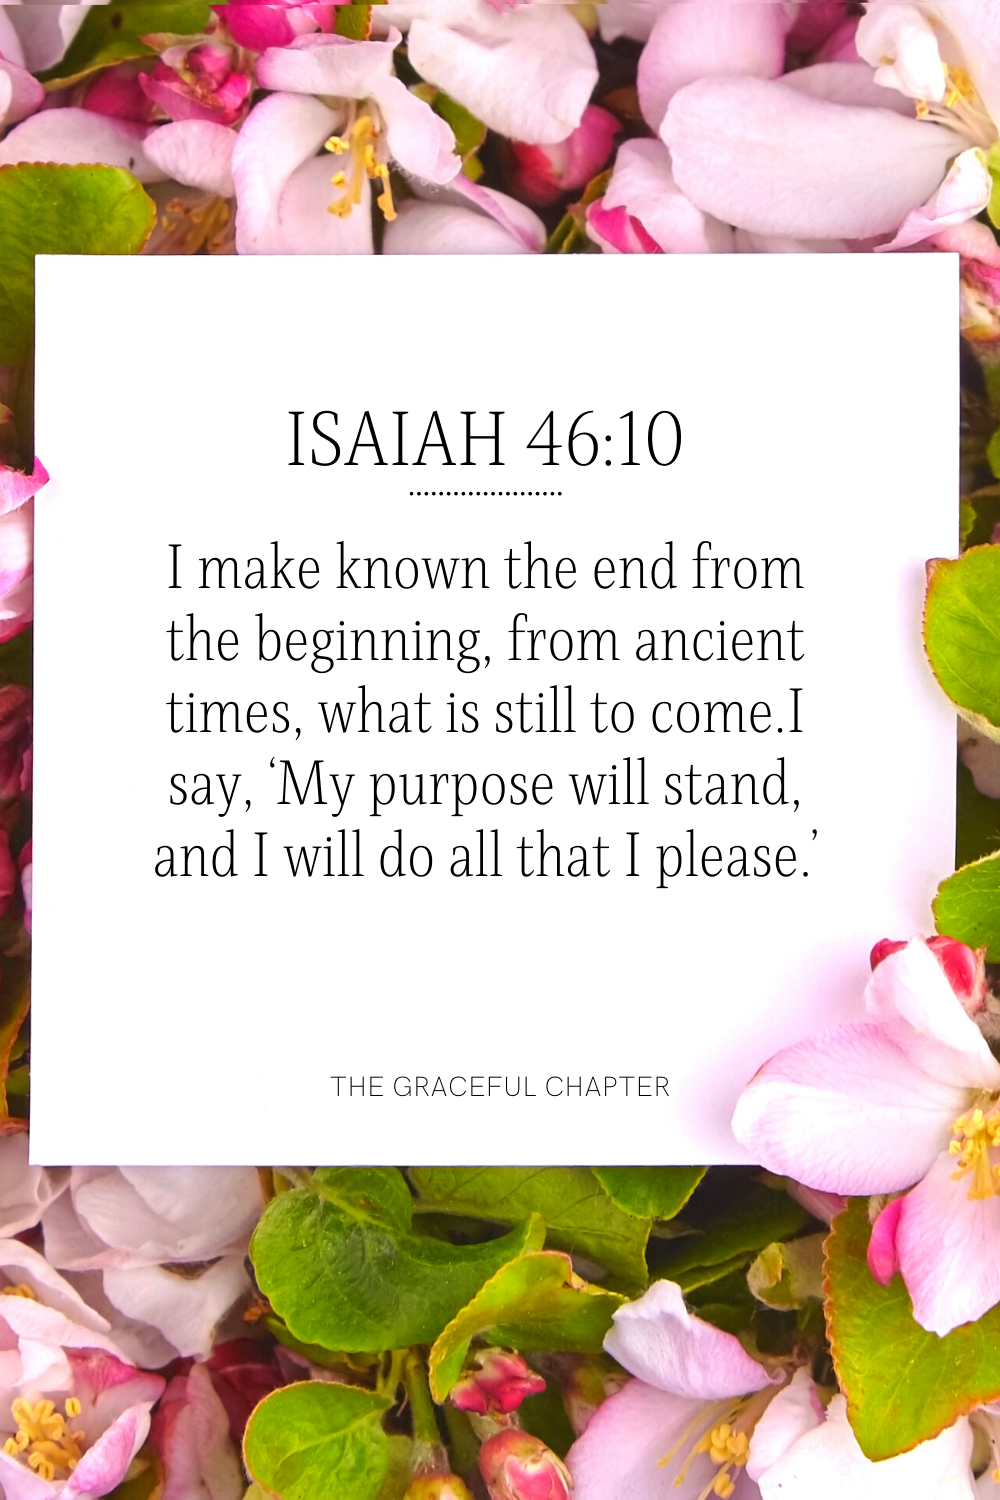 I make known the end from the beginning, from ancient times, what is still to come. I say, 'My purpose will stand, and I will do all that I please.' Isaiah 46:10